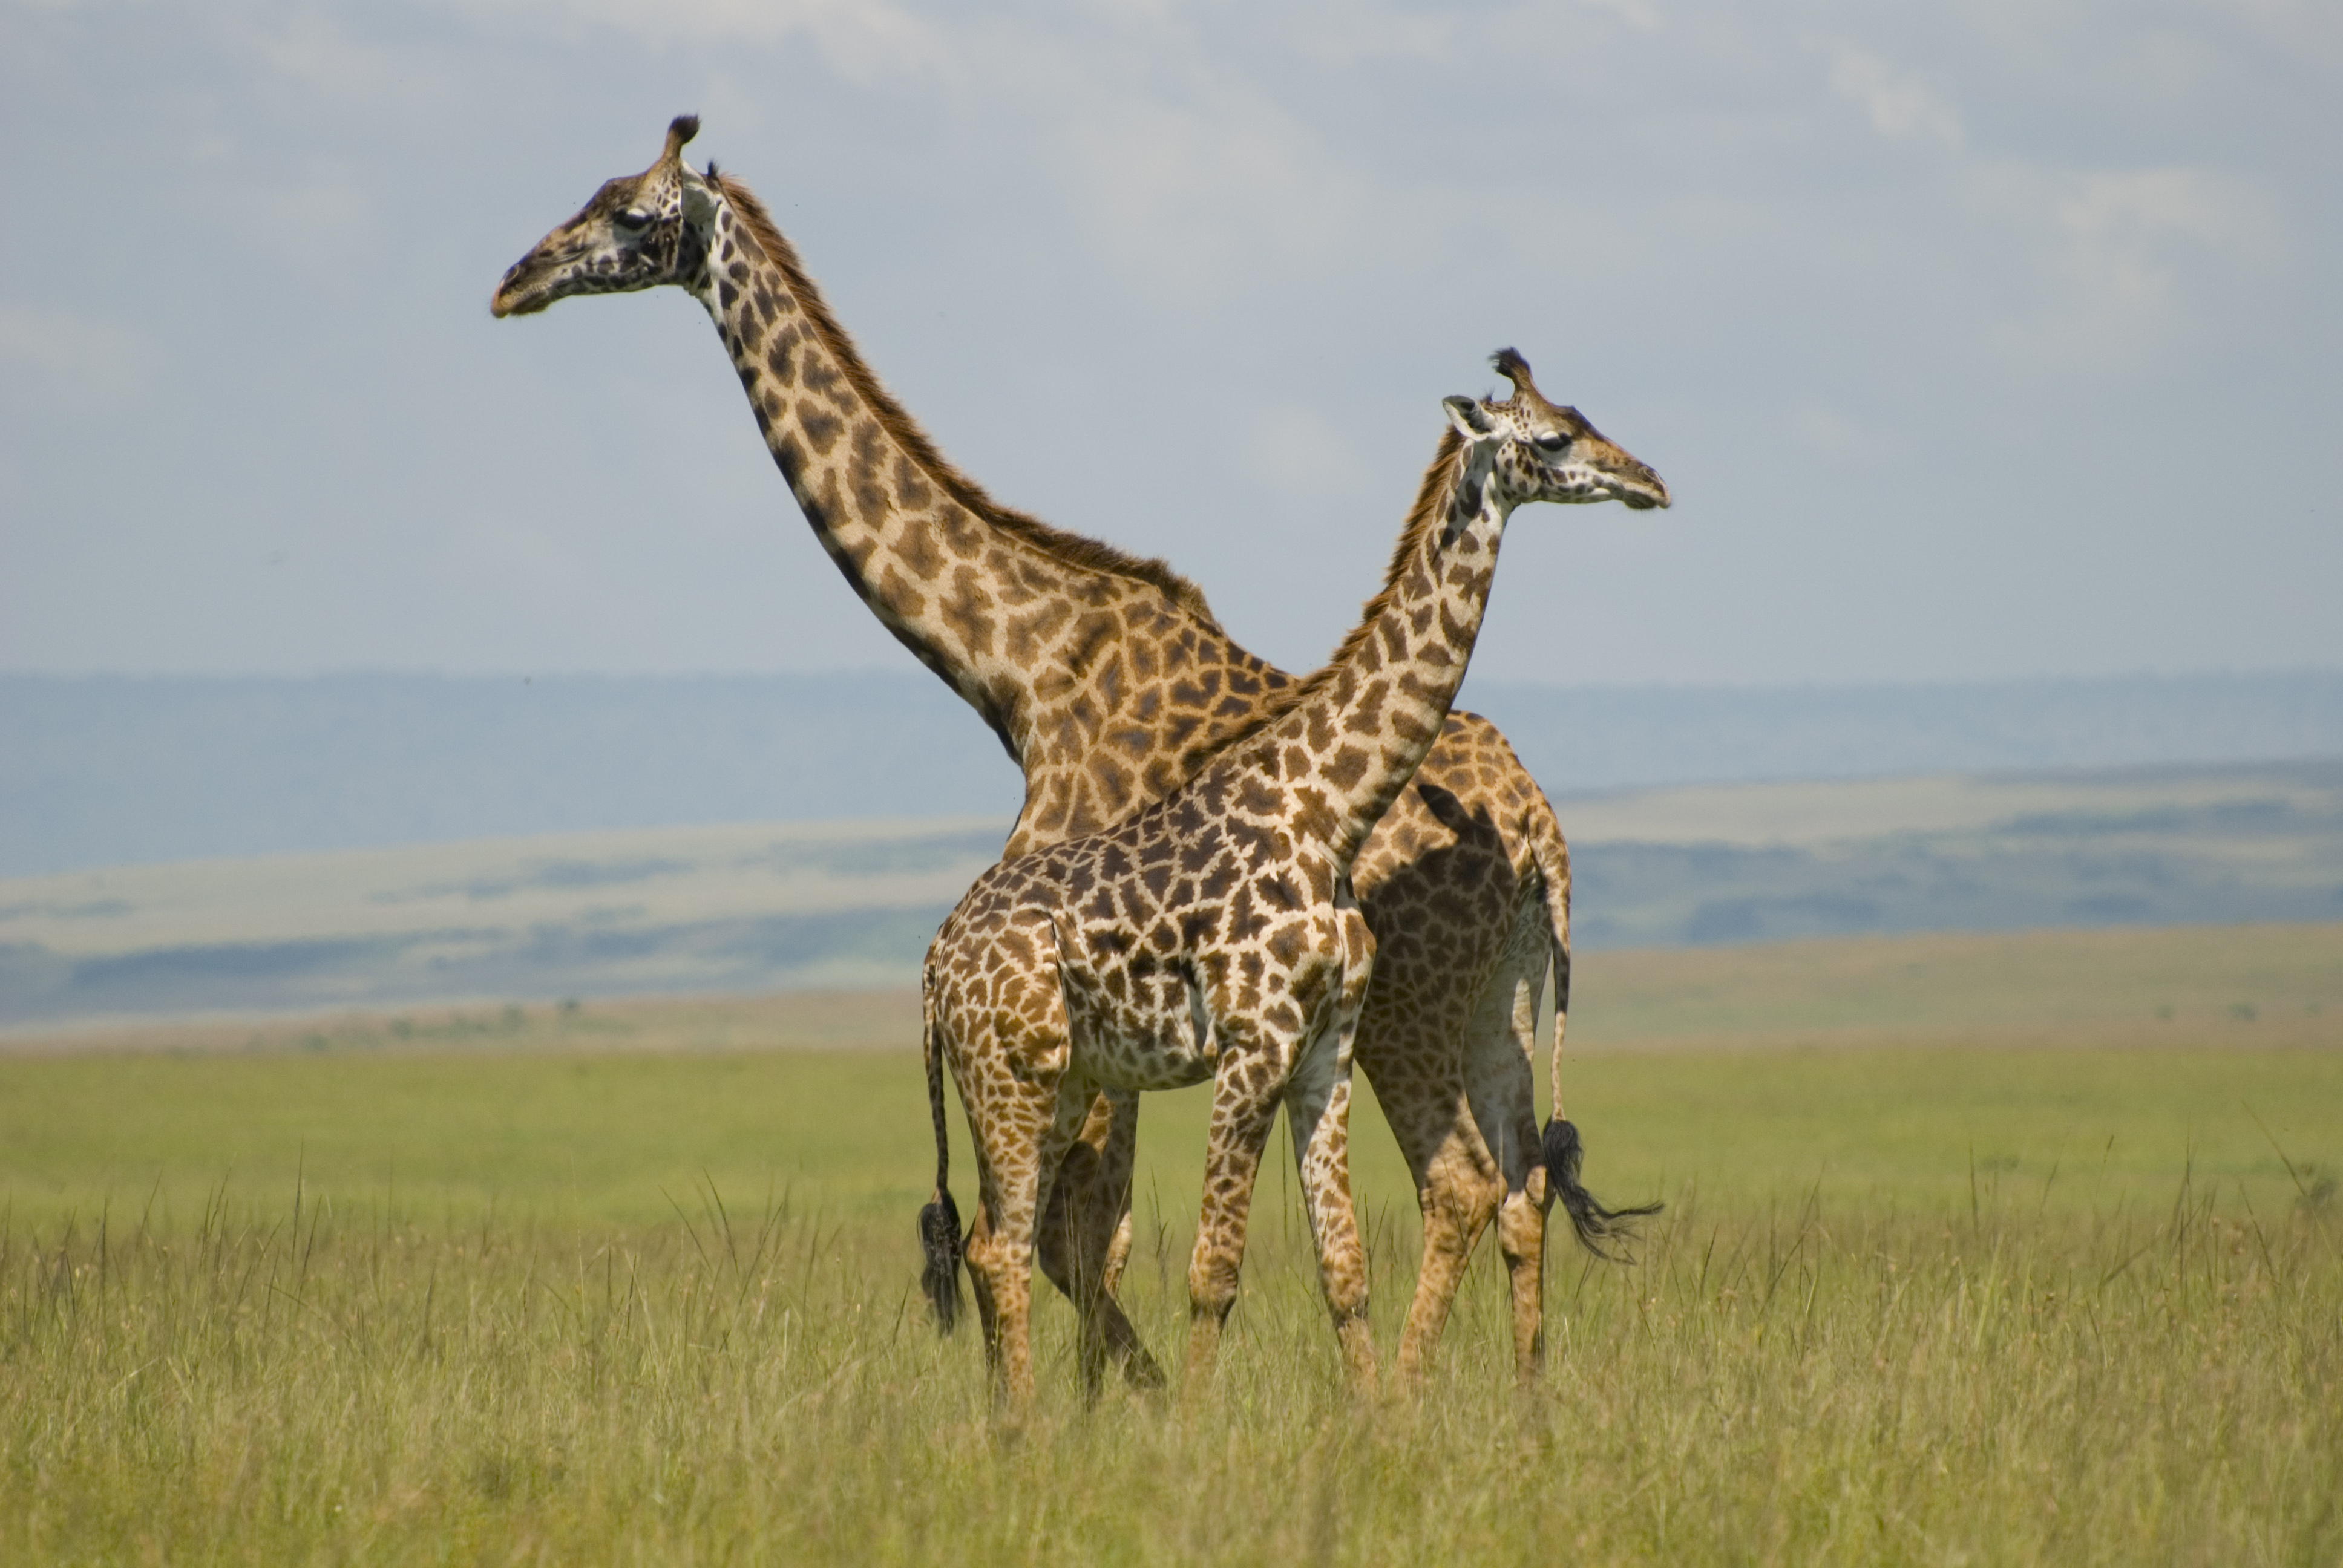 Some of the beautiful giraffe's in the Maasai Mara